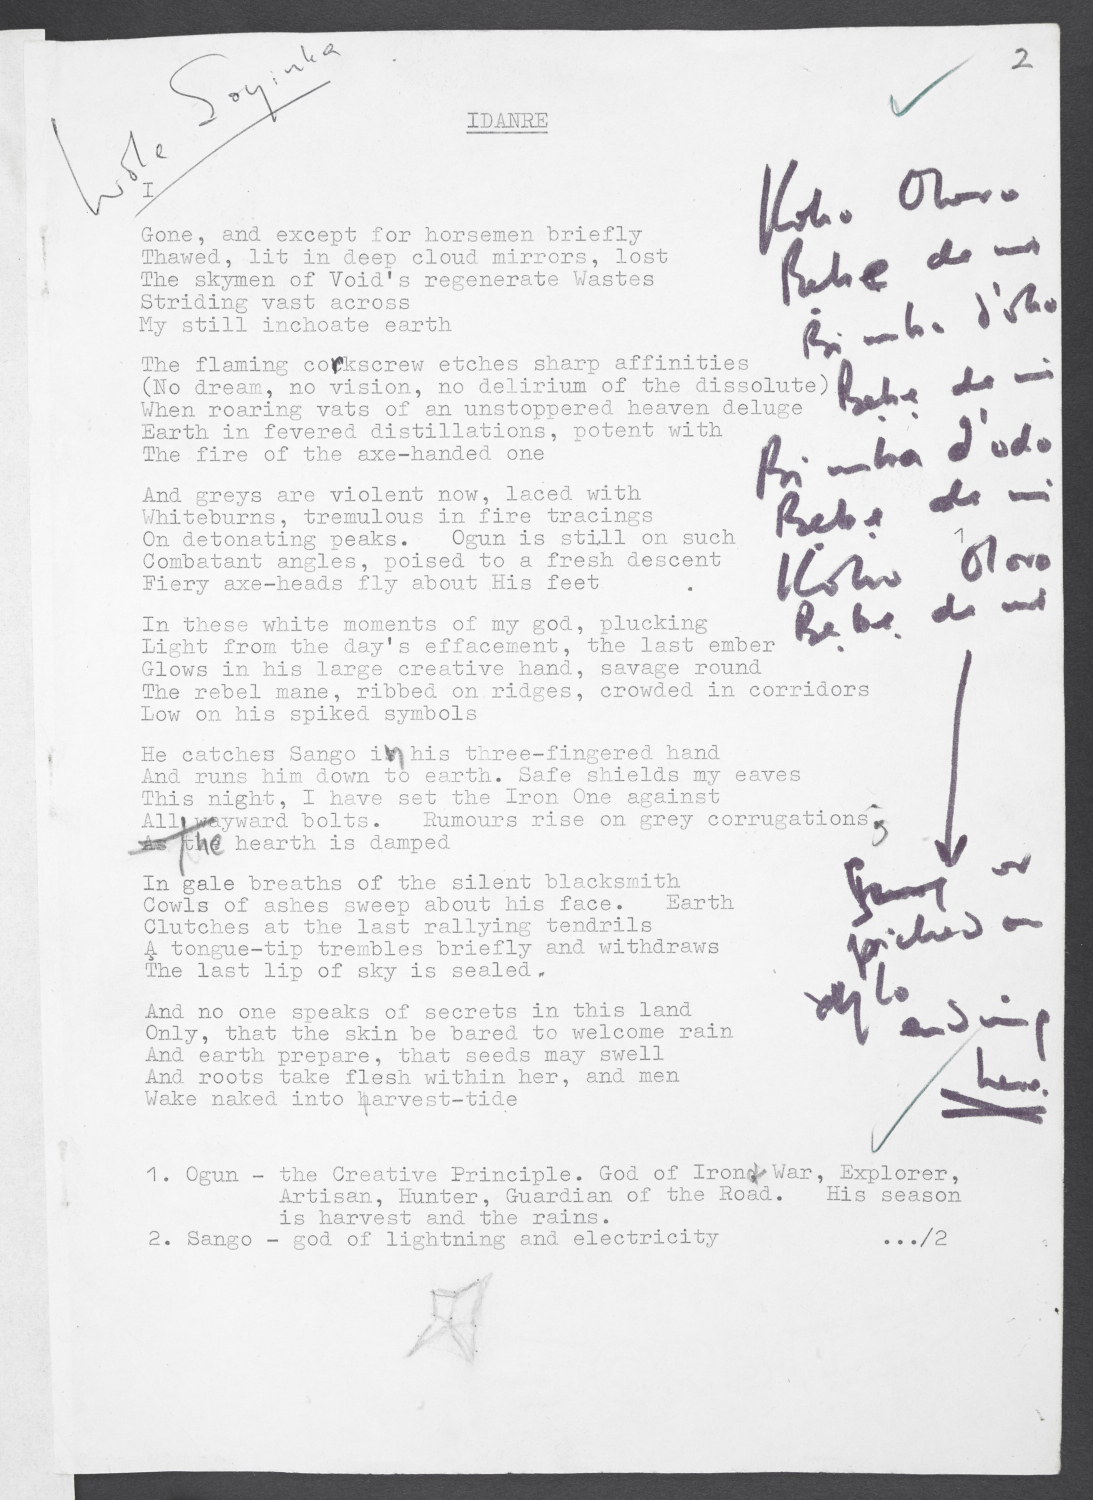 Sections from Wole Soyinka's annotated typescript of 'Idanre' (1965)